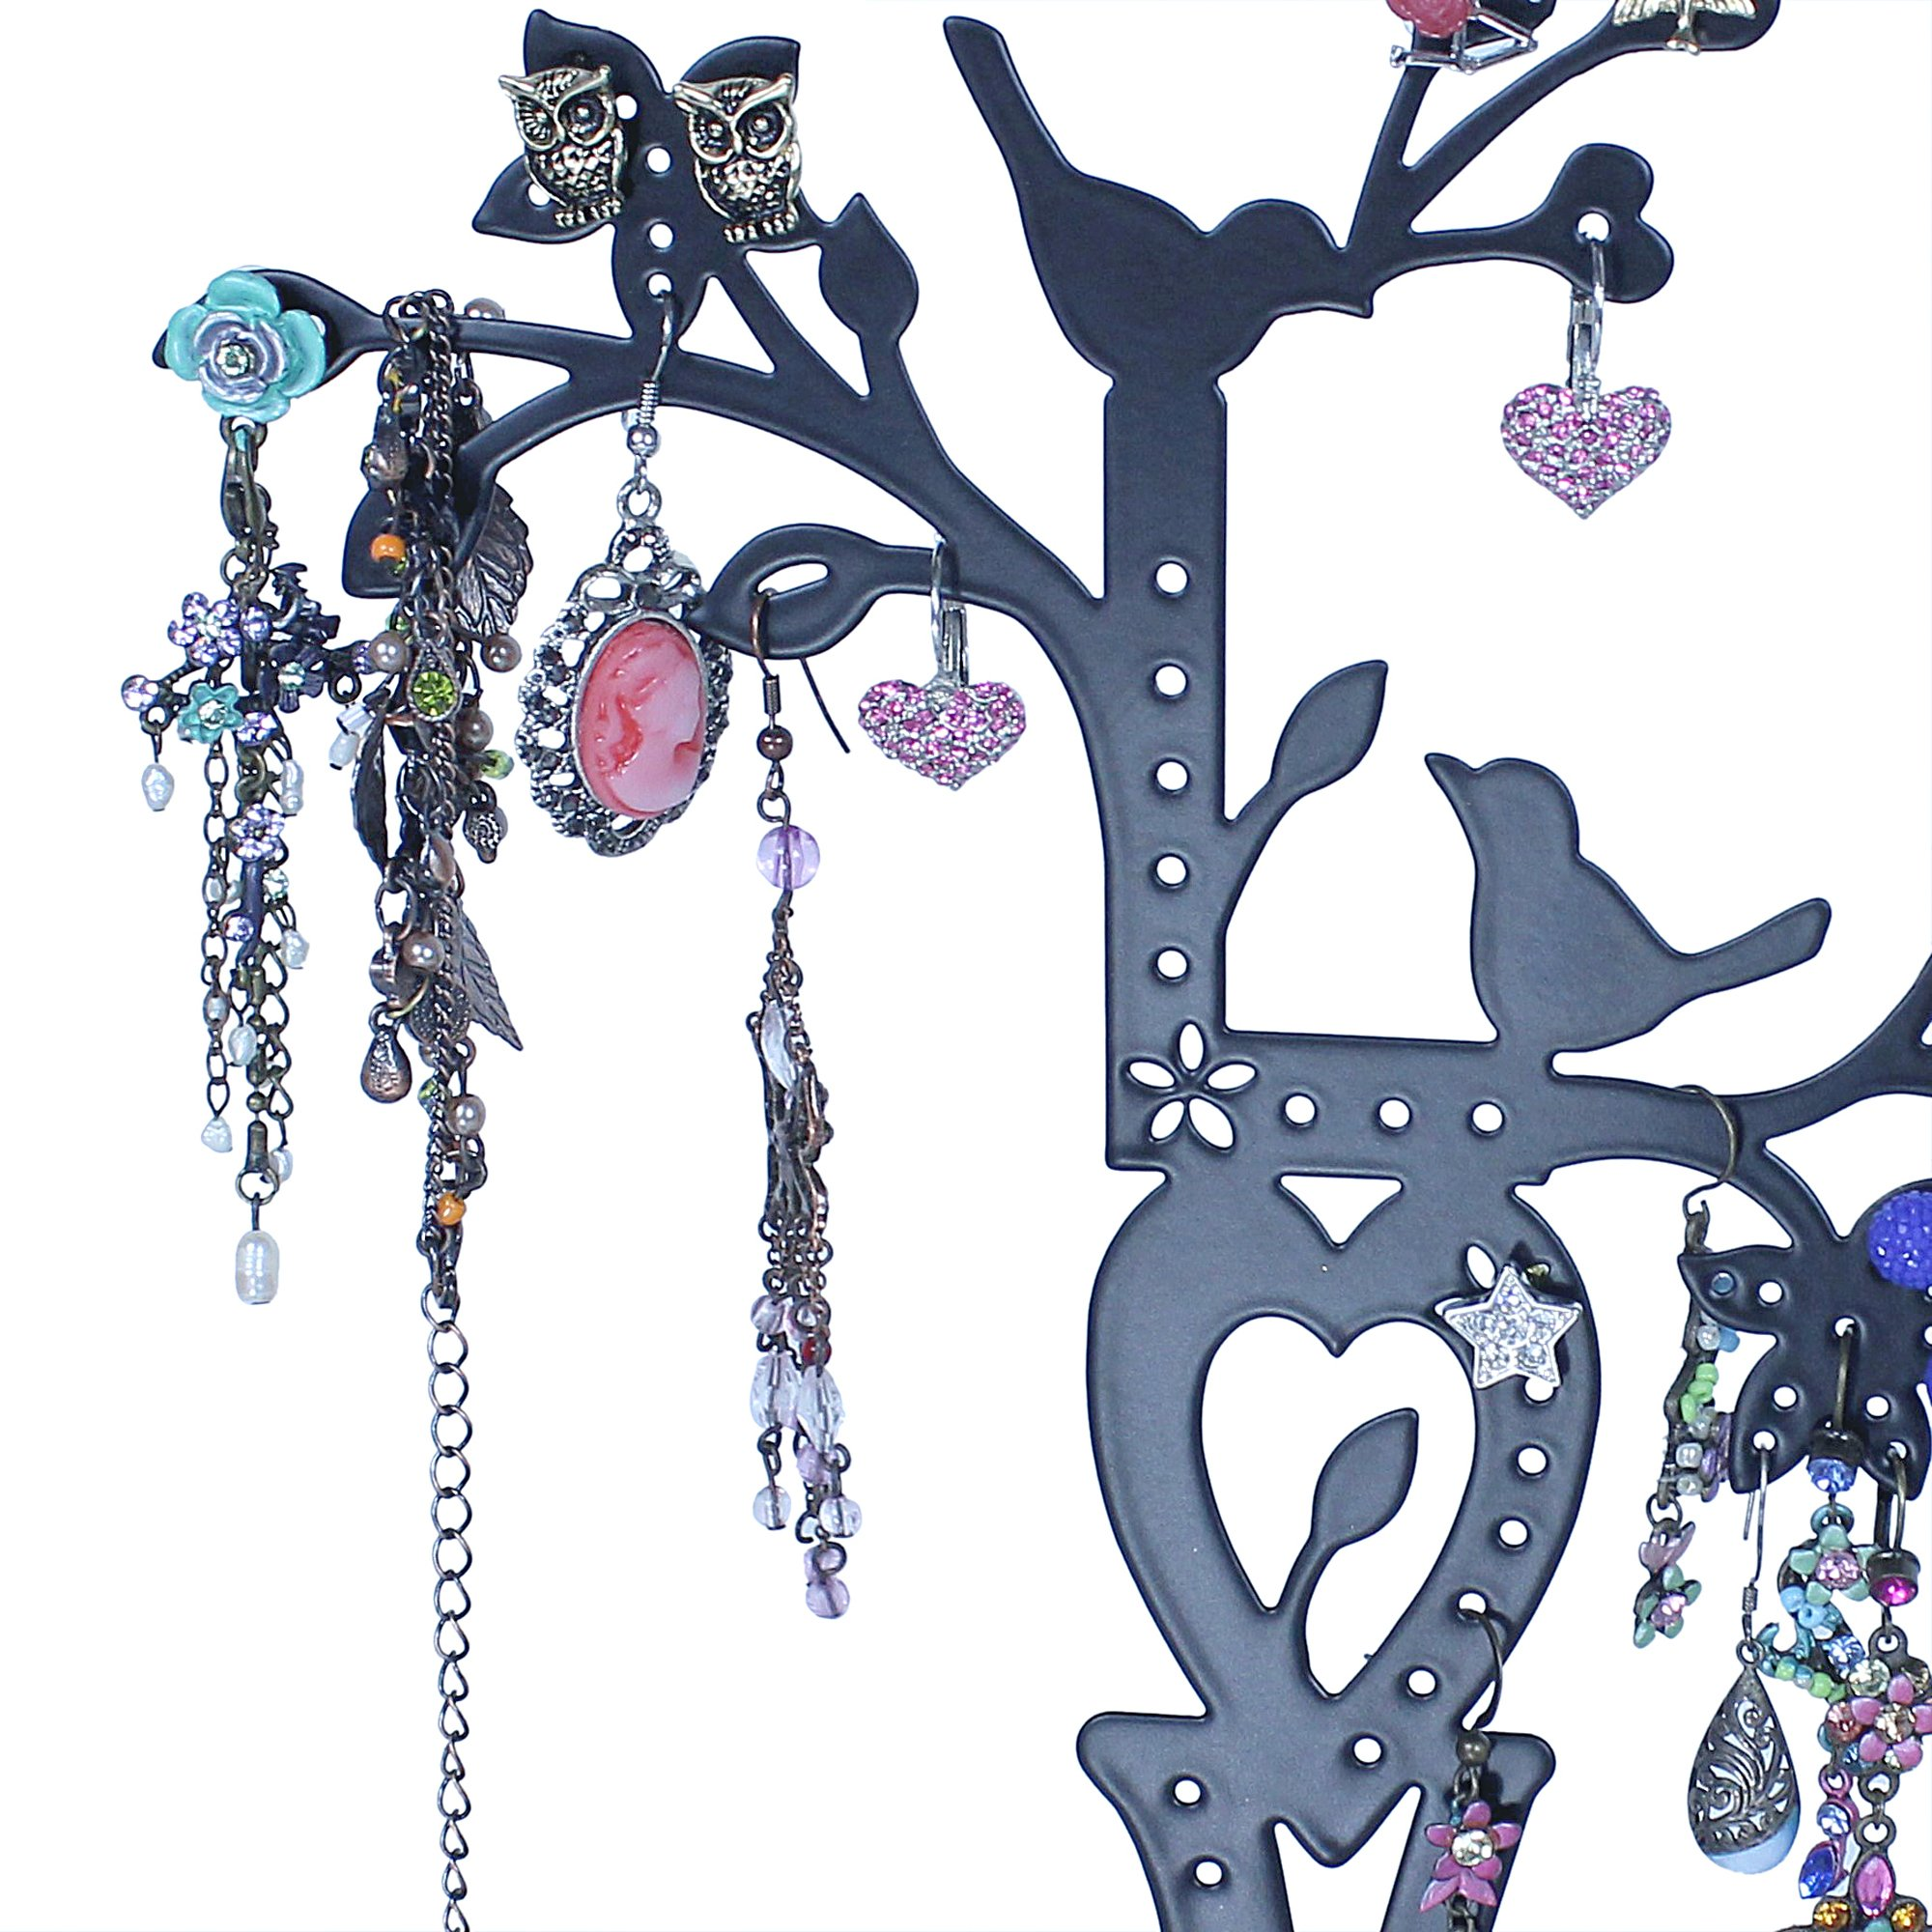 LOVE Jewelry Tree Stand Black with Two Lovebirds Tweeting, Removable Magnet Bottom, Tray Base, Metal by JewelryNanny (Image #3)